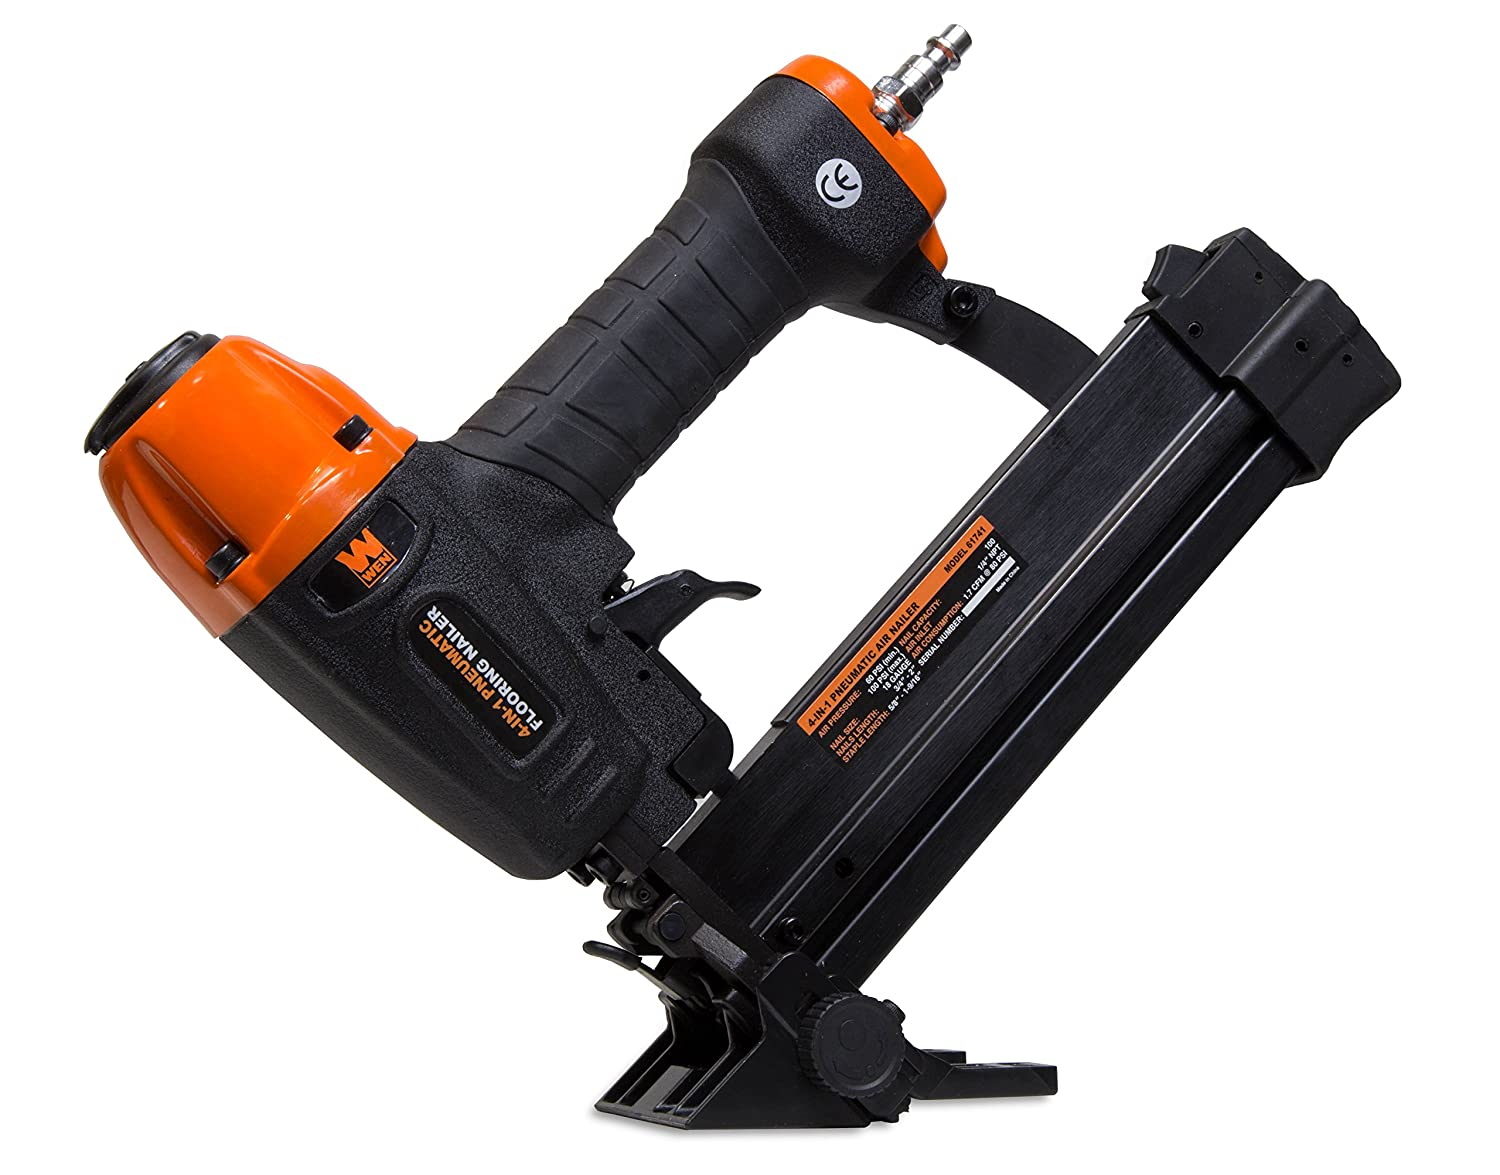 Mastercraft 3 In 1 Flooring Stapler Nailer Review